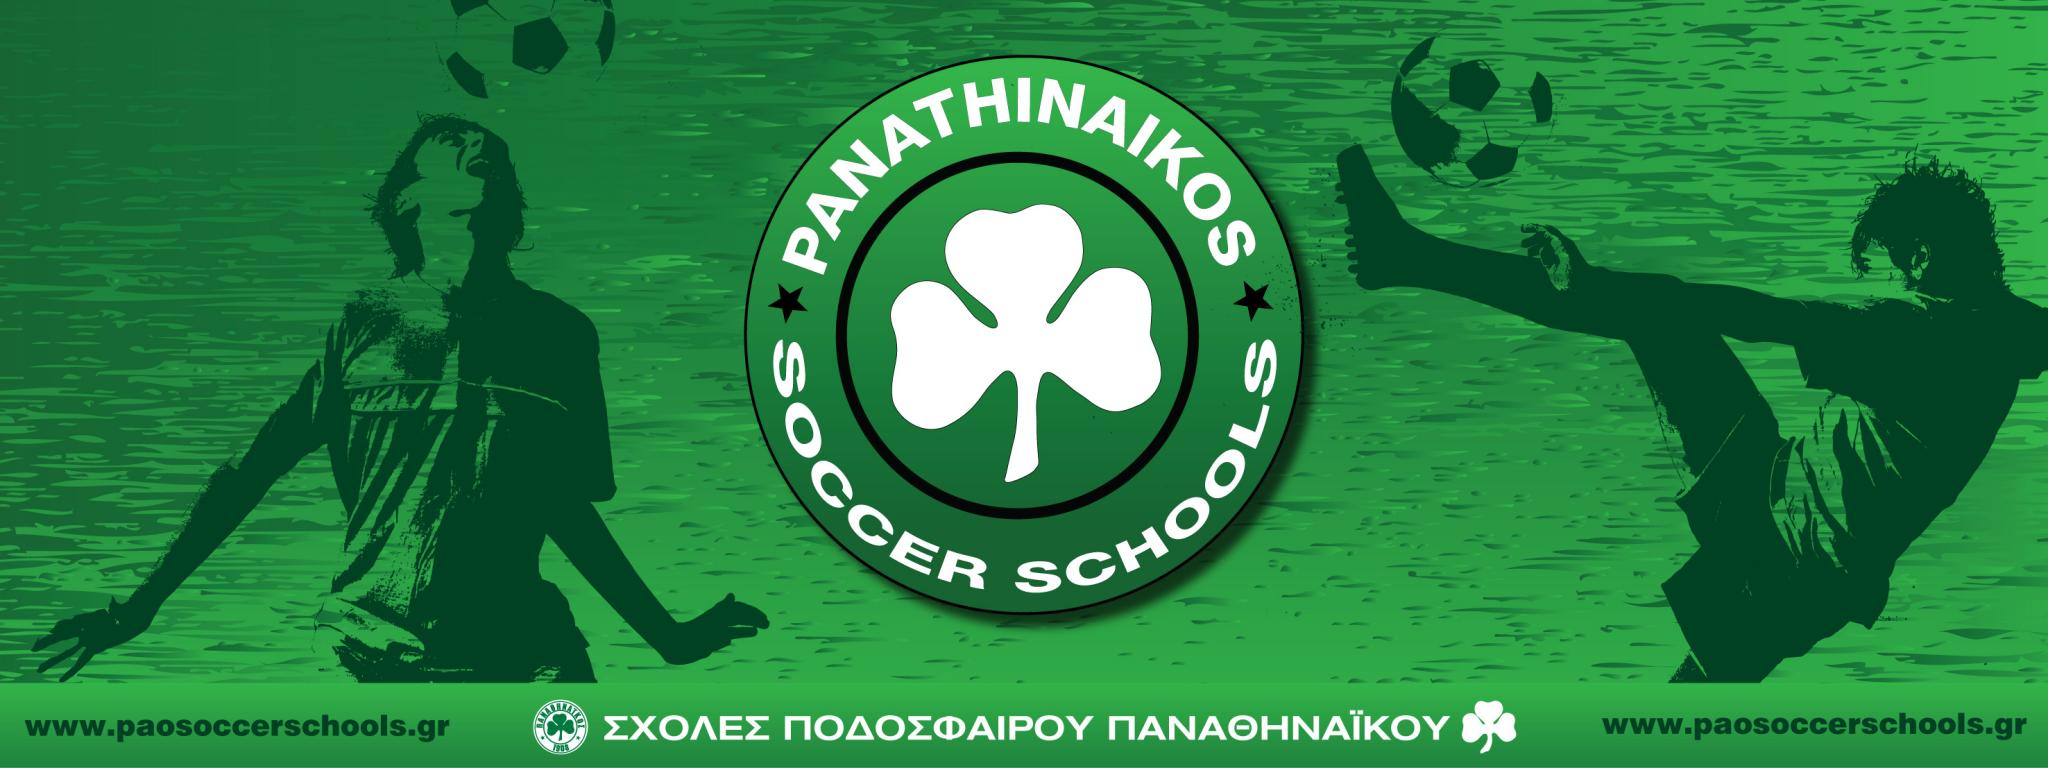 Τα «Panathinaikos Soccer Schools» στο «youngtalents» | Panathinaikos24.gr